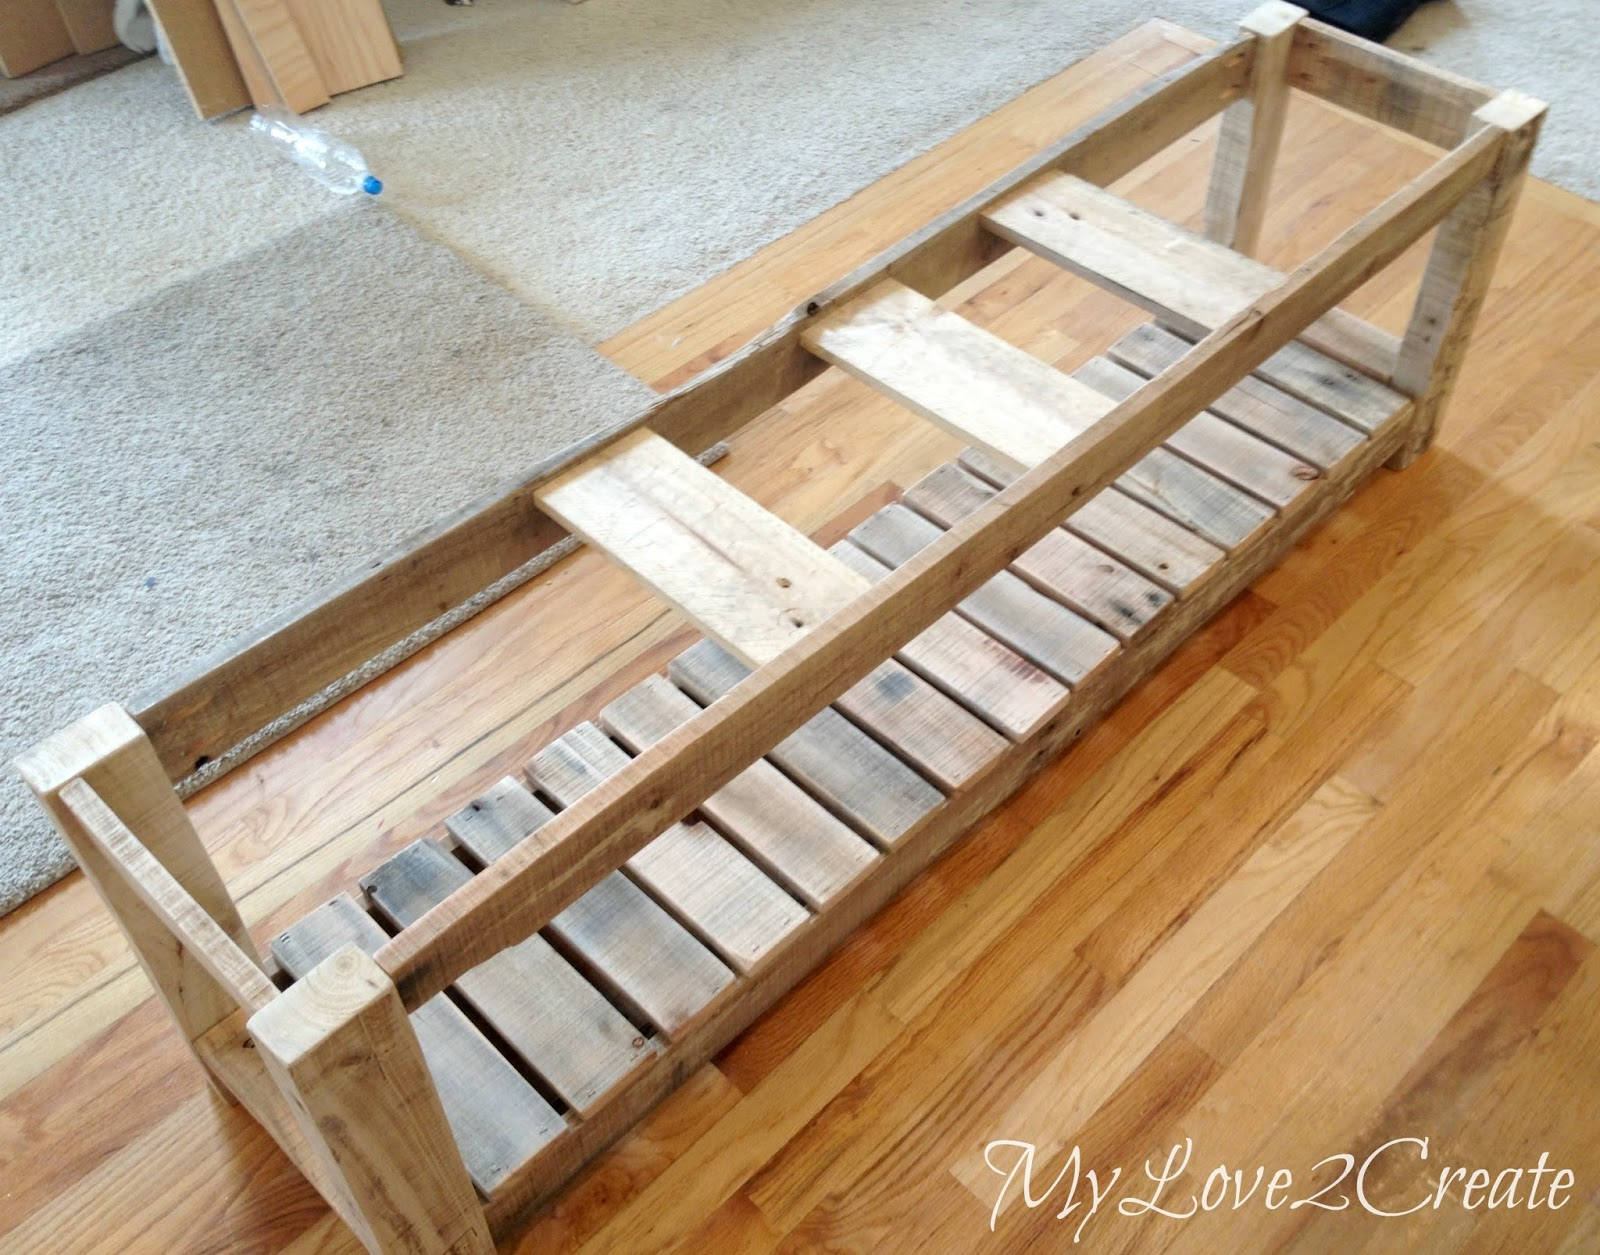 Nail on pallet wood slats for bench shelf